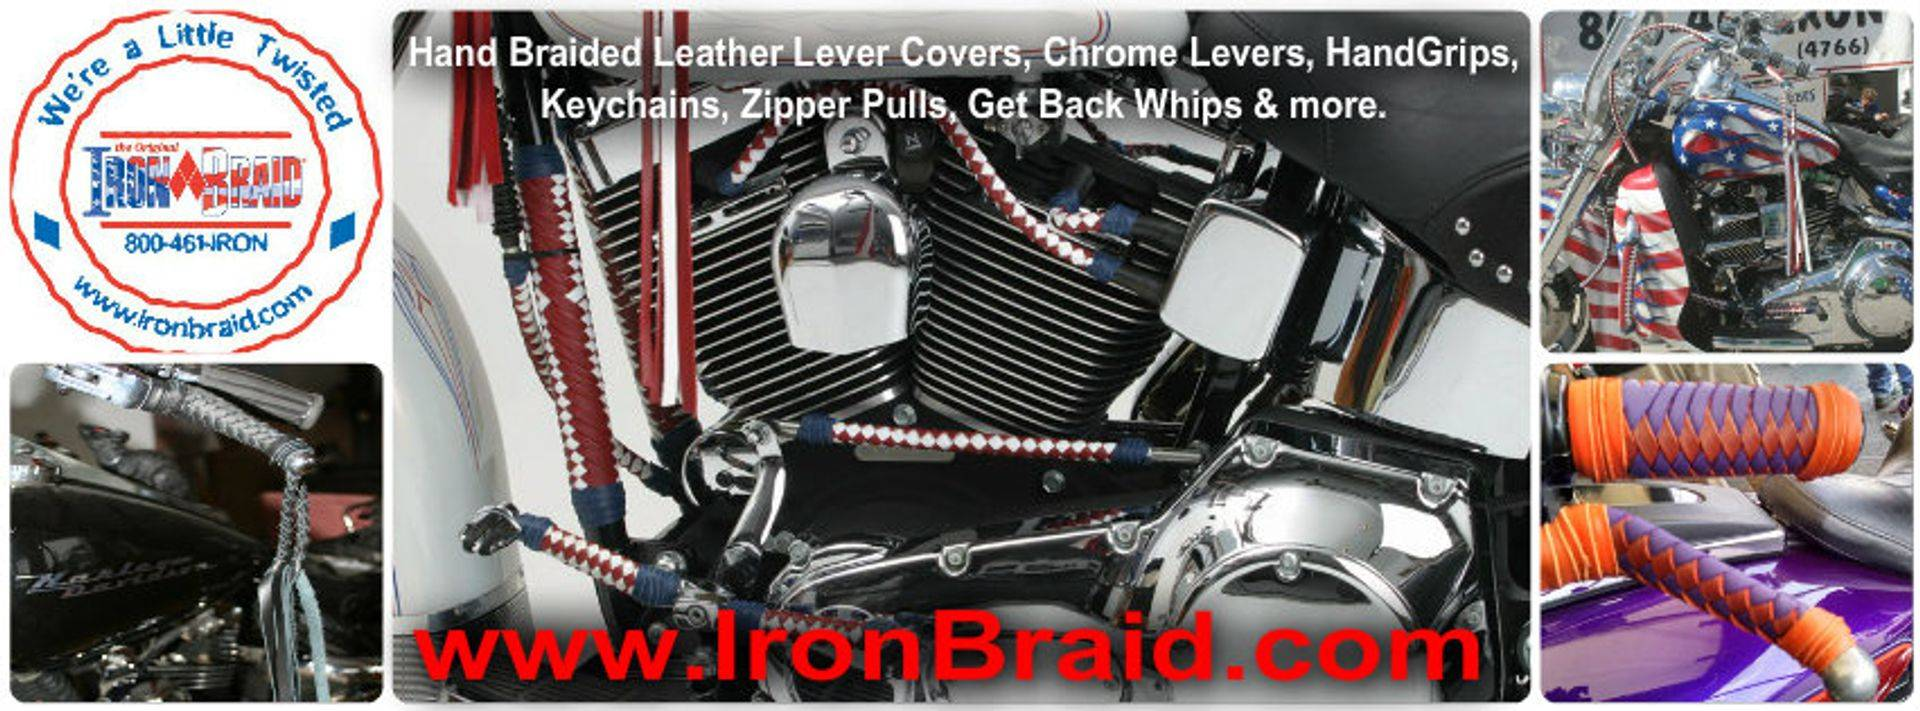 Iron Braid motorcycle braided accessories